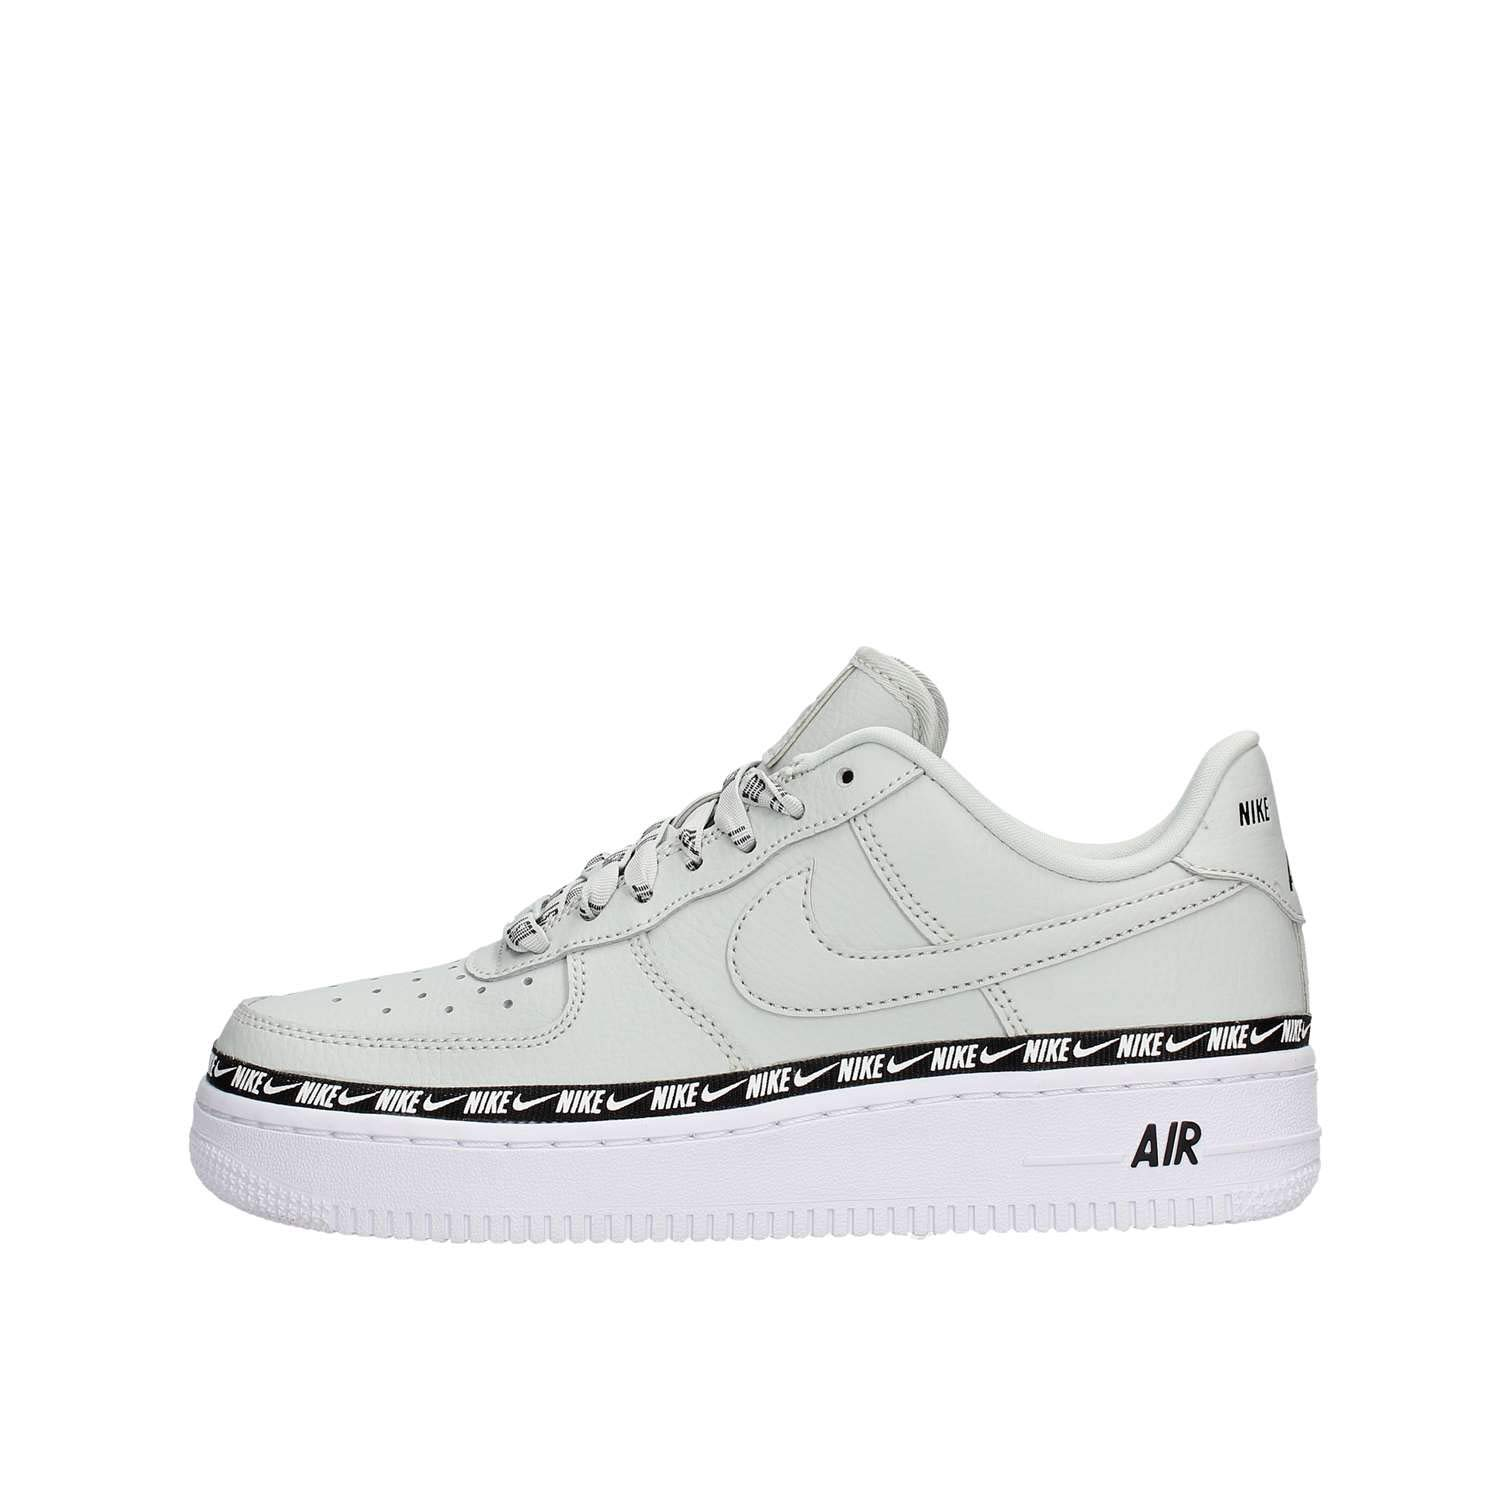 Nike, Donna, Air Force 1 07 SE Premium, Pelle, Sneakers